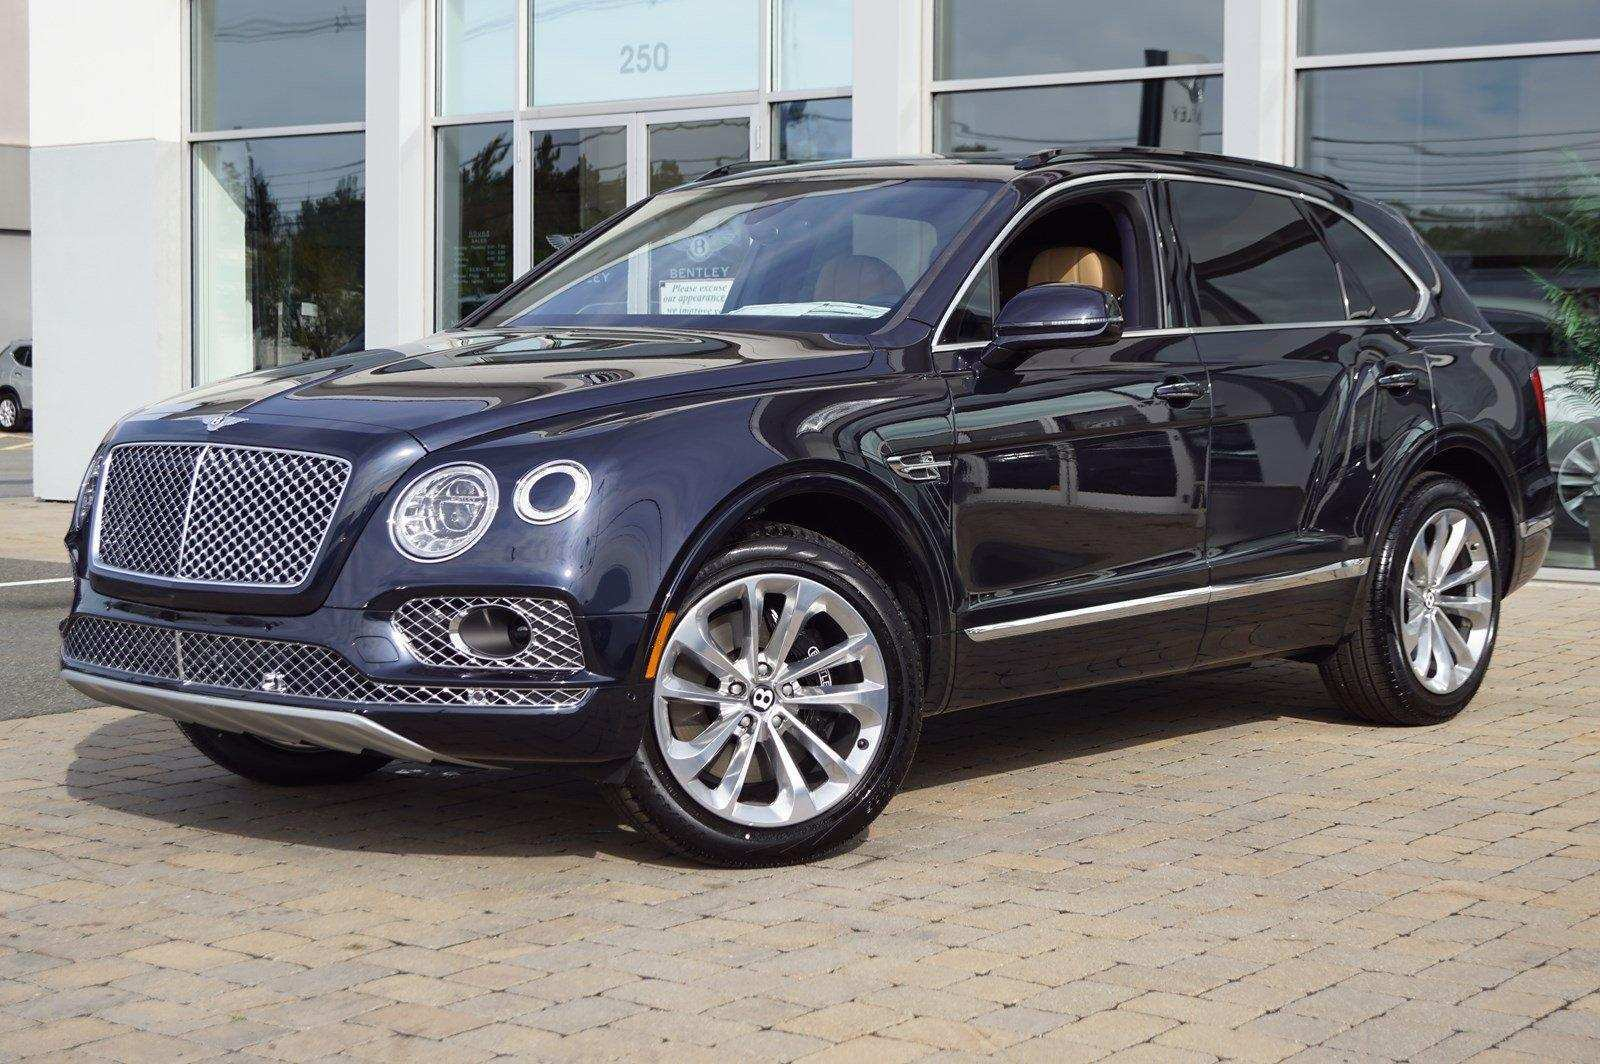 64 A 2019 Bentley Truck Prices